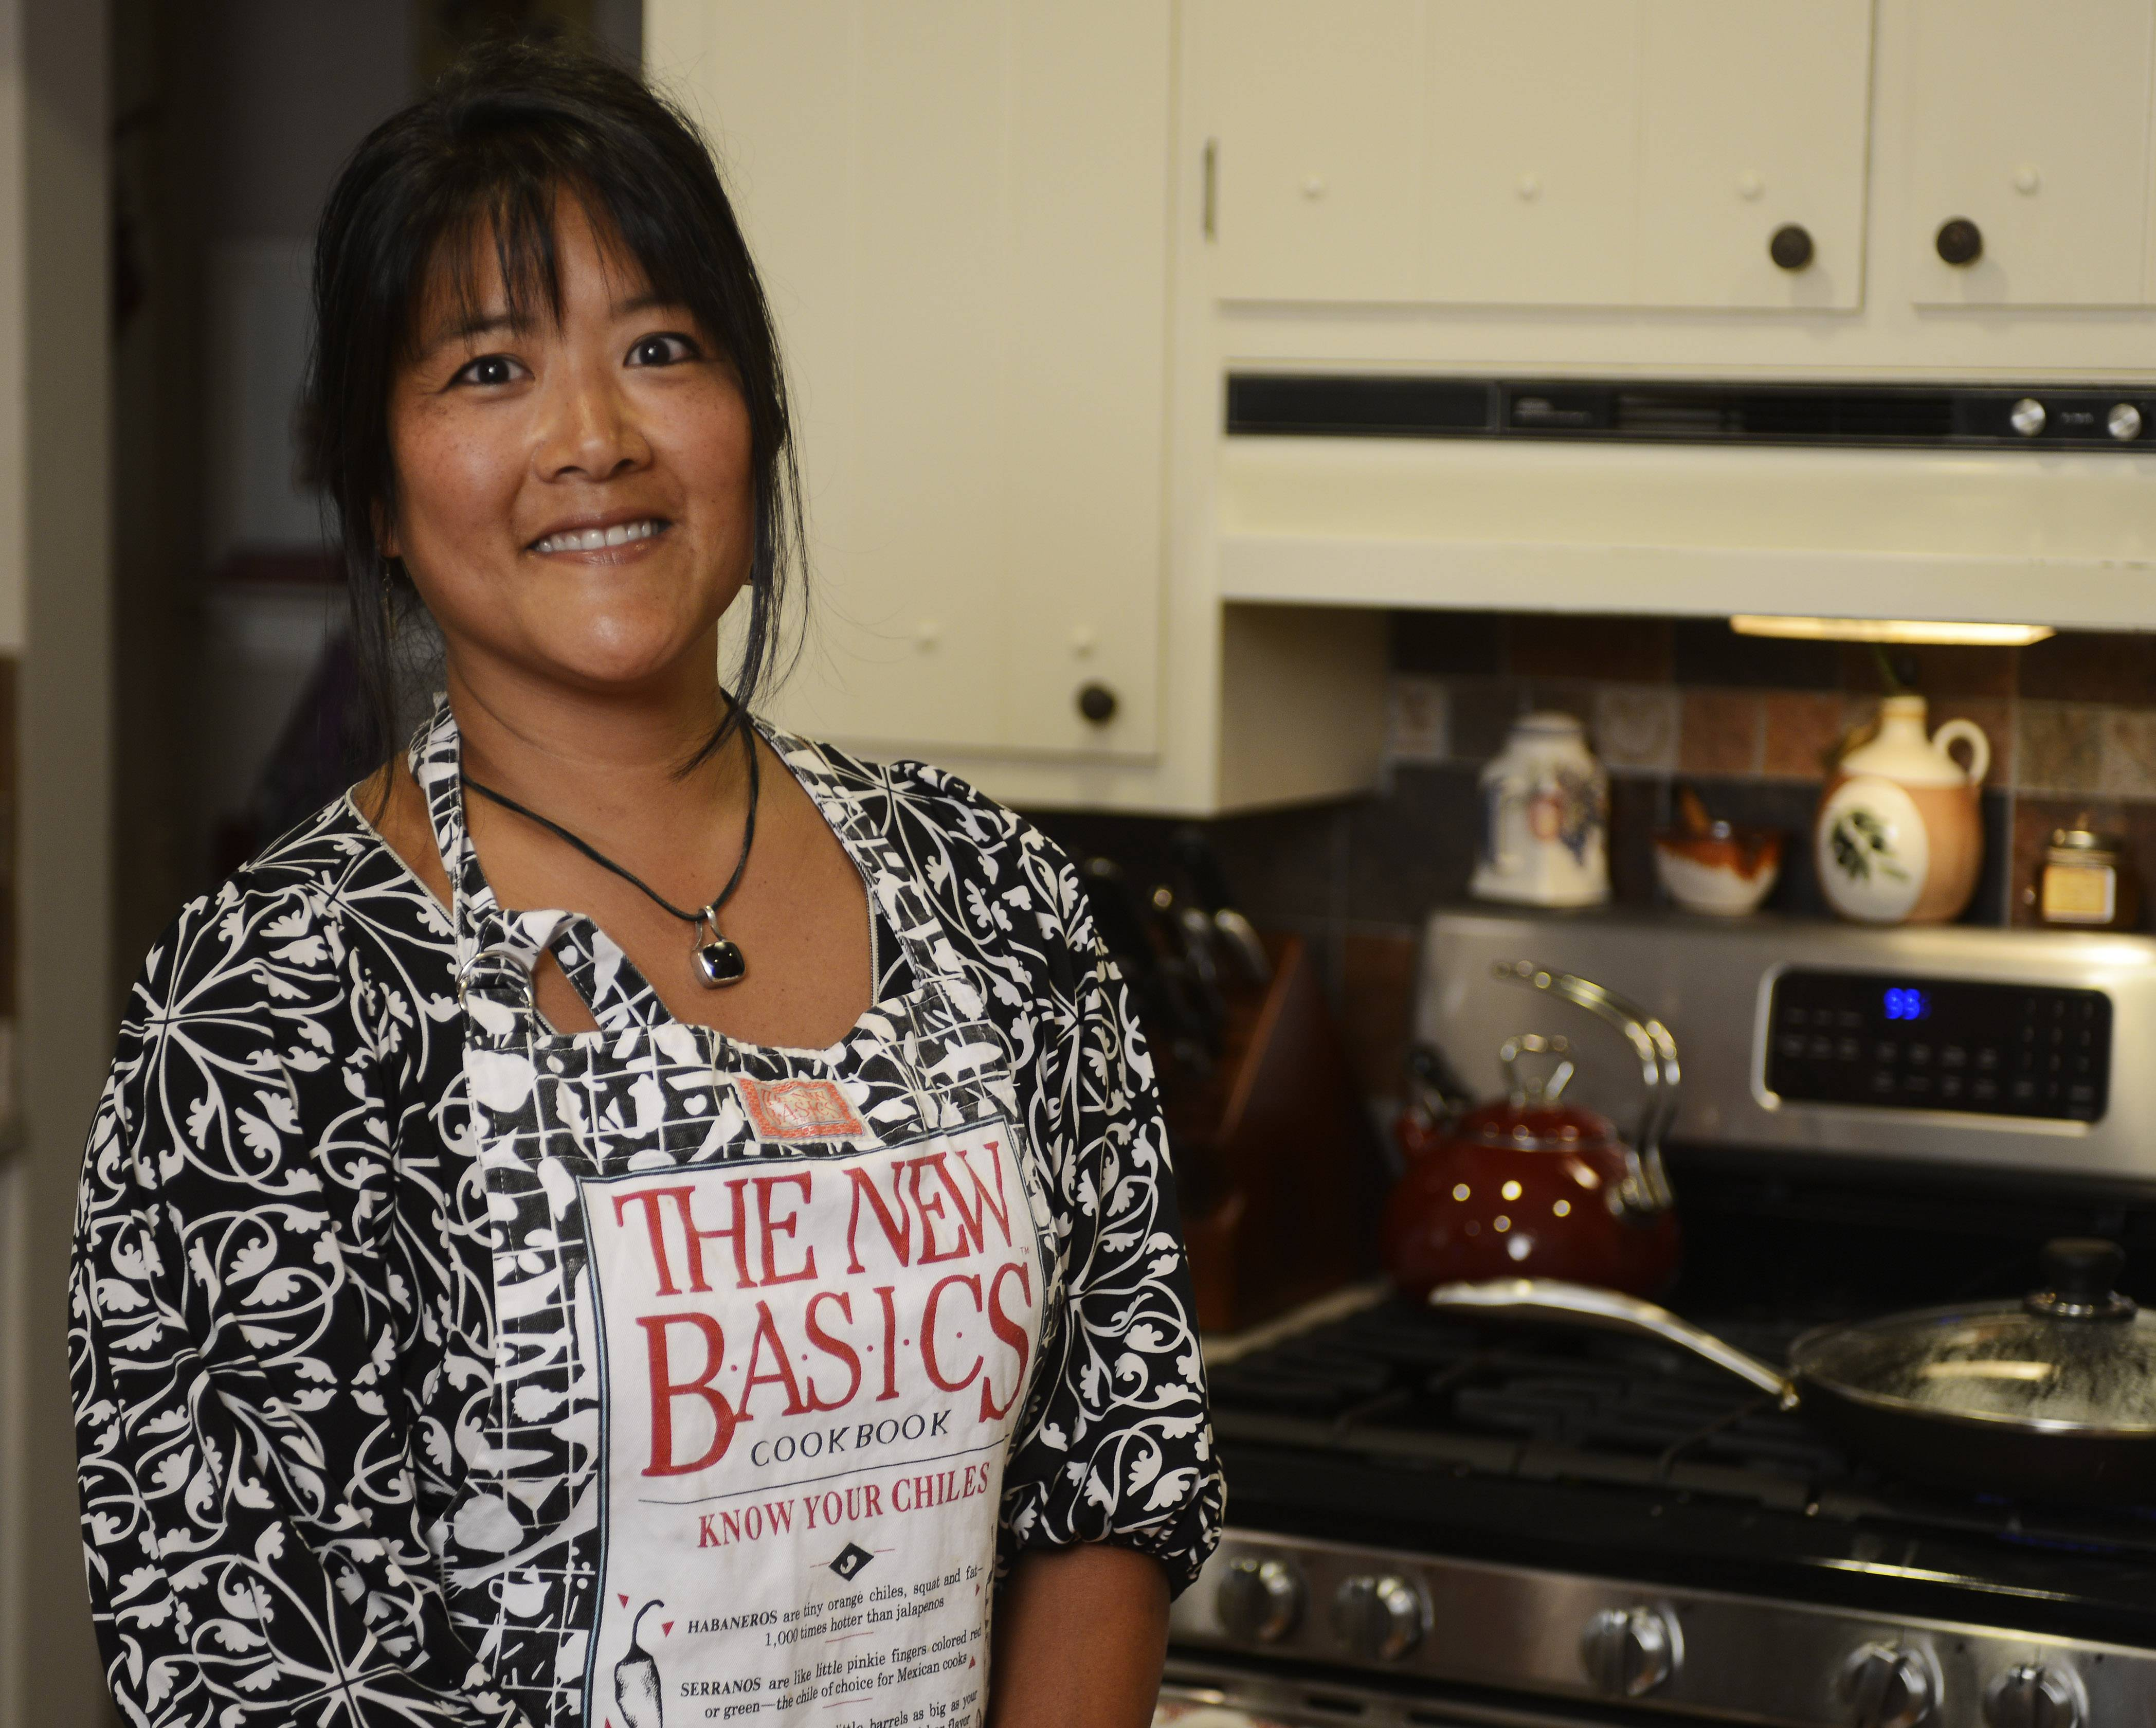 Jennifer Noone had her sights set on becoming a chef but went into real estate instead. She still likes to cook at home and share recipes with others.